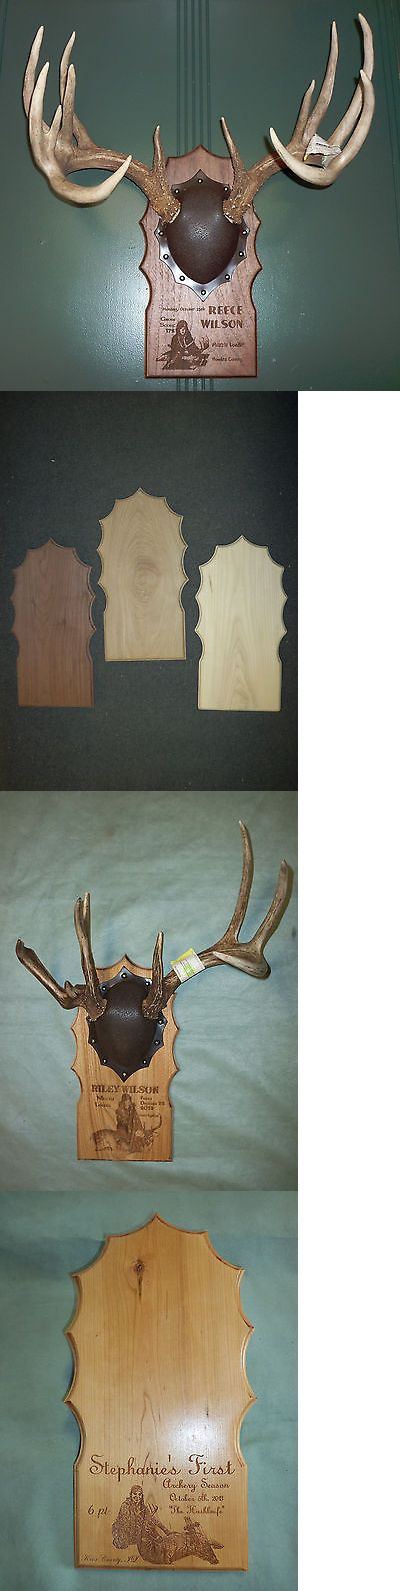 Large Animals 177908: Personalized Mounting Taxidermy Deer Antler Plaque Trophy Engraved Walnut Cherry BUY IT NOW ONLY: $45.0